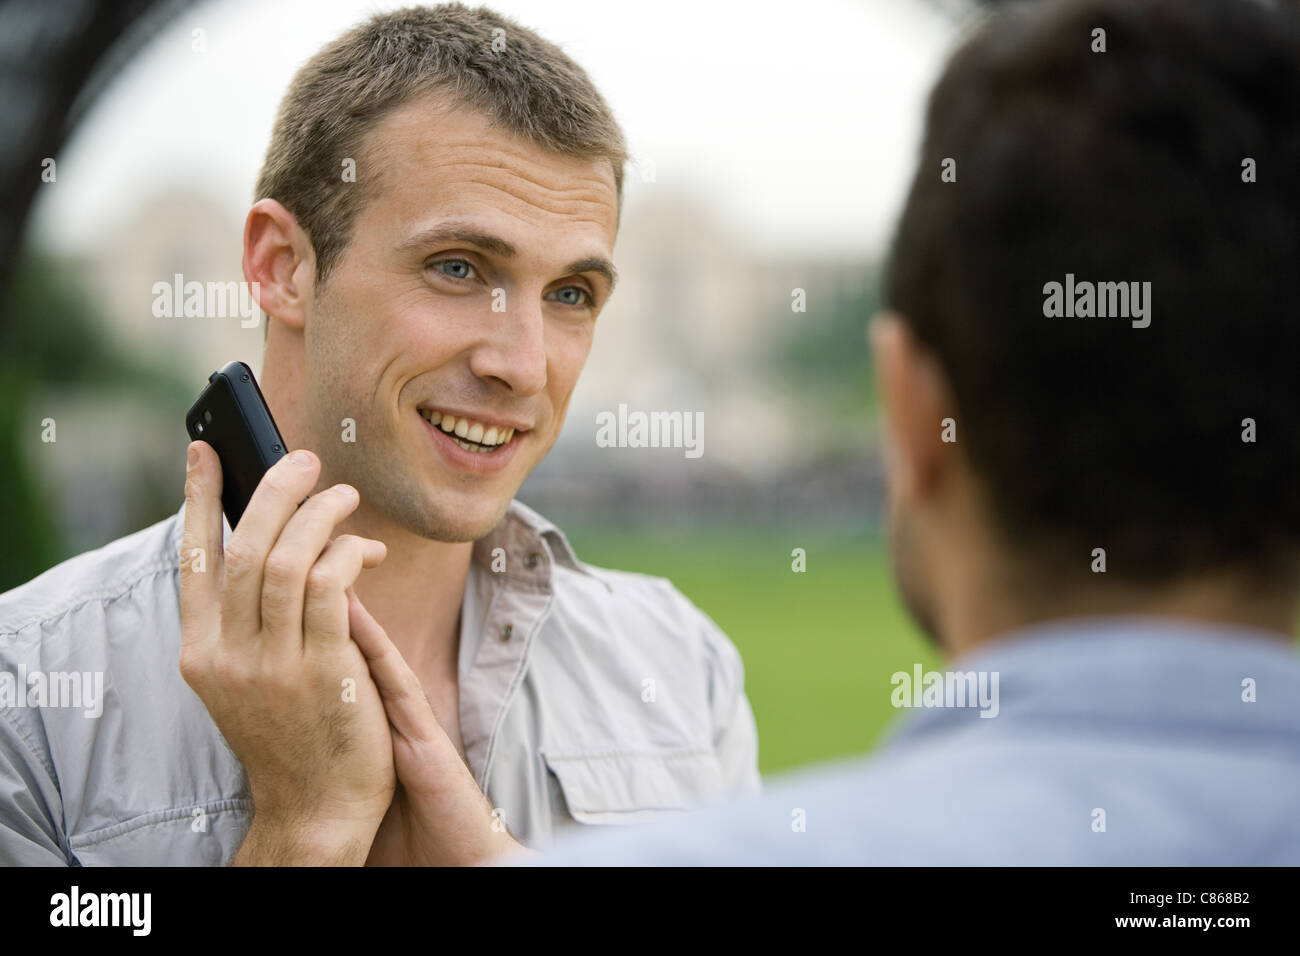 Man on phone call, covering cellphone mouthpiece with hand to talk to acquaintance - Stock Image